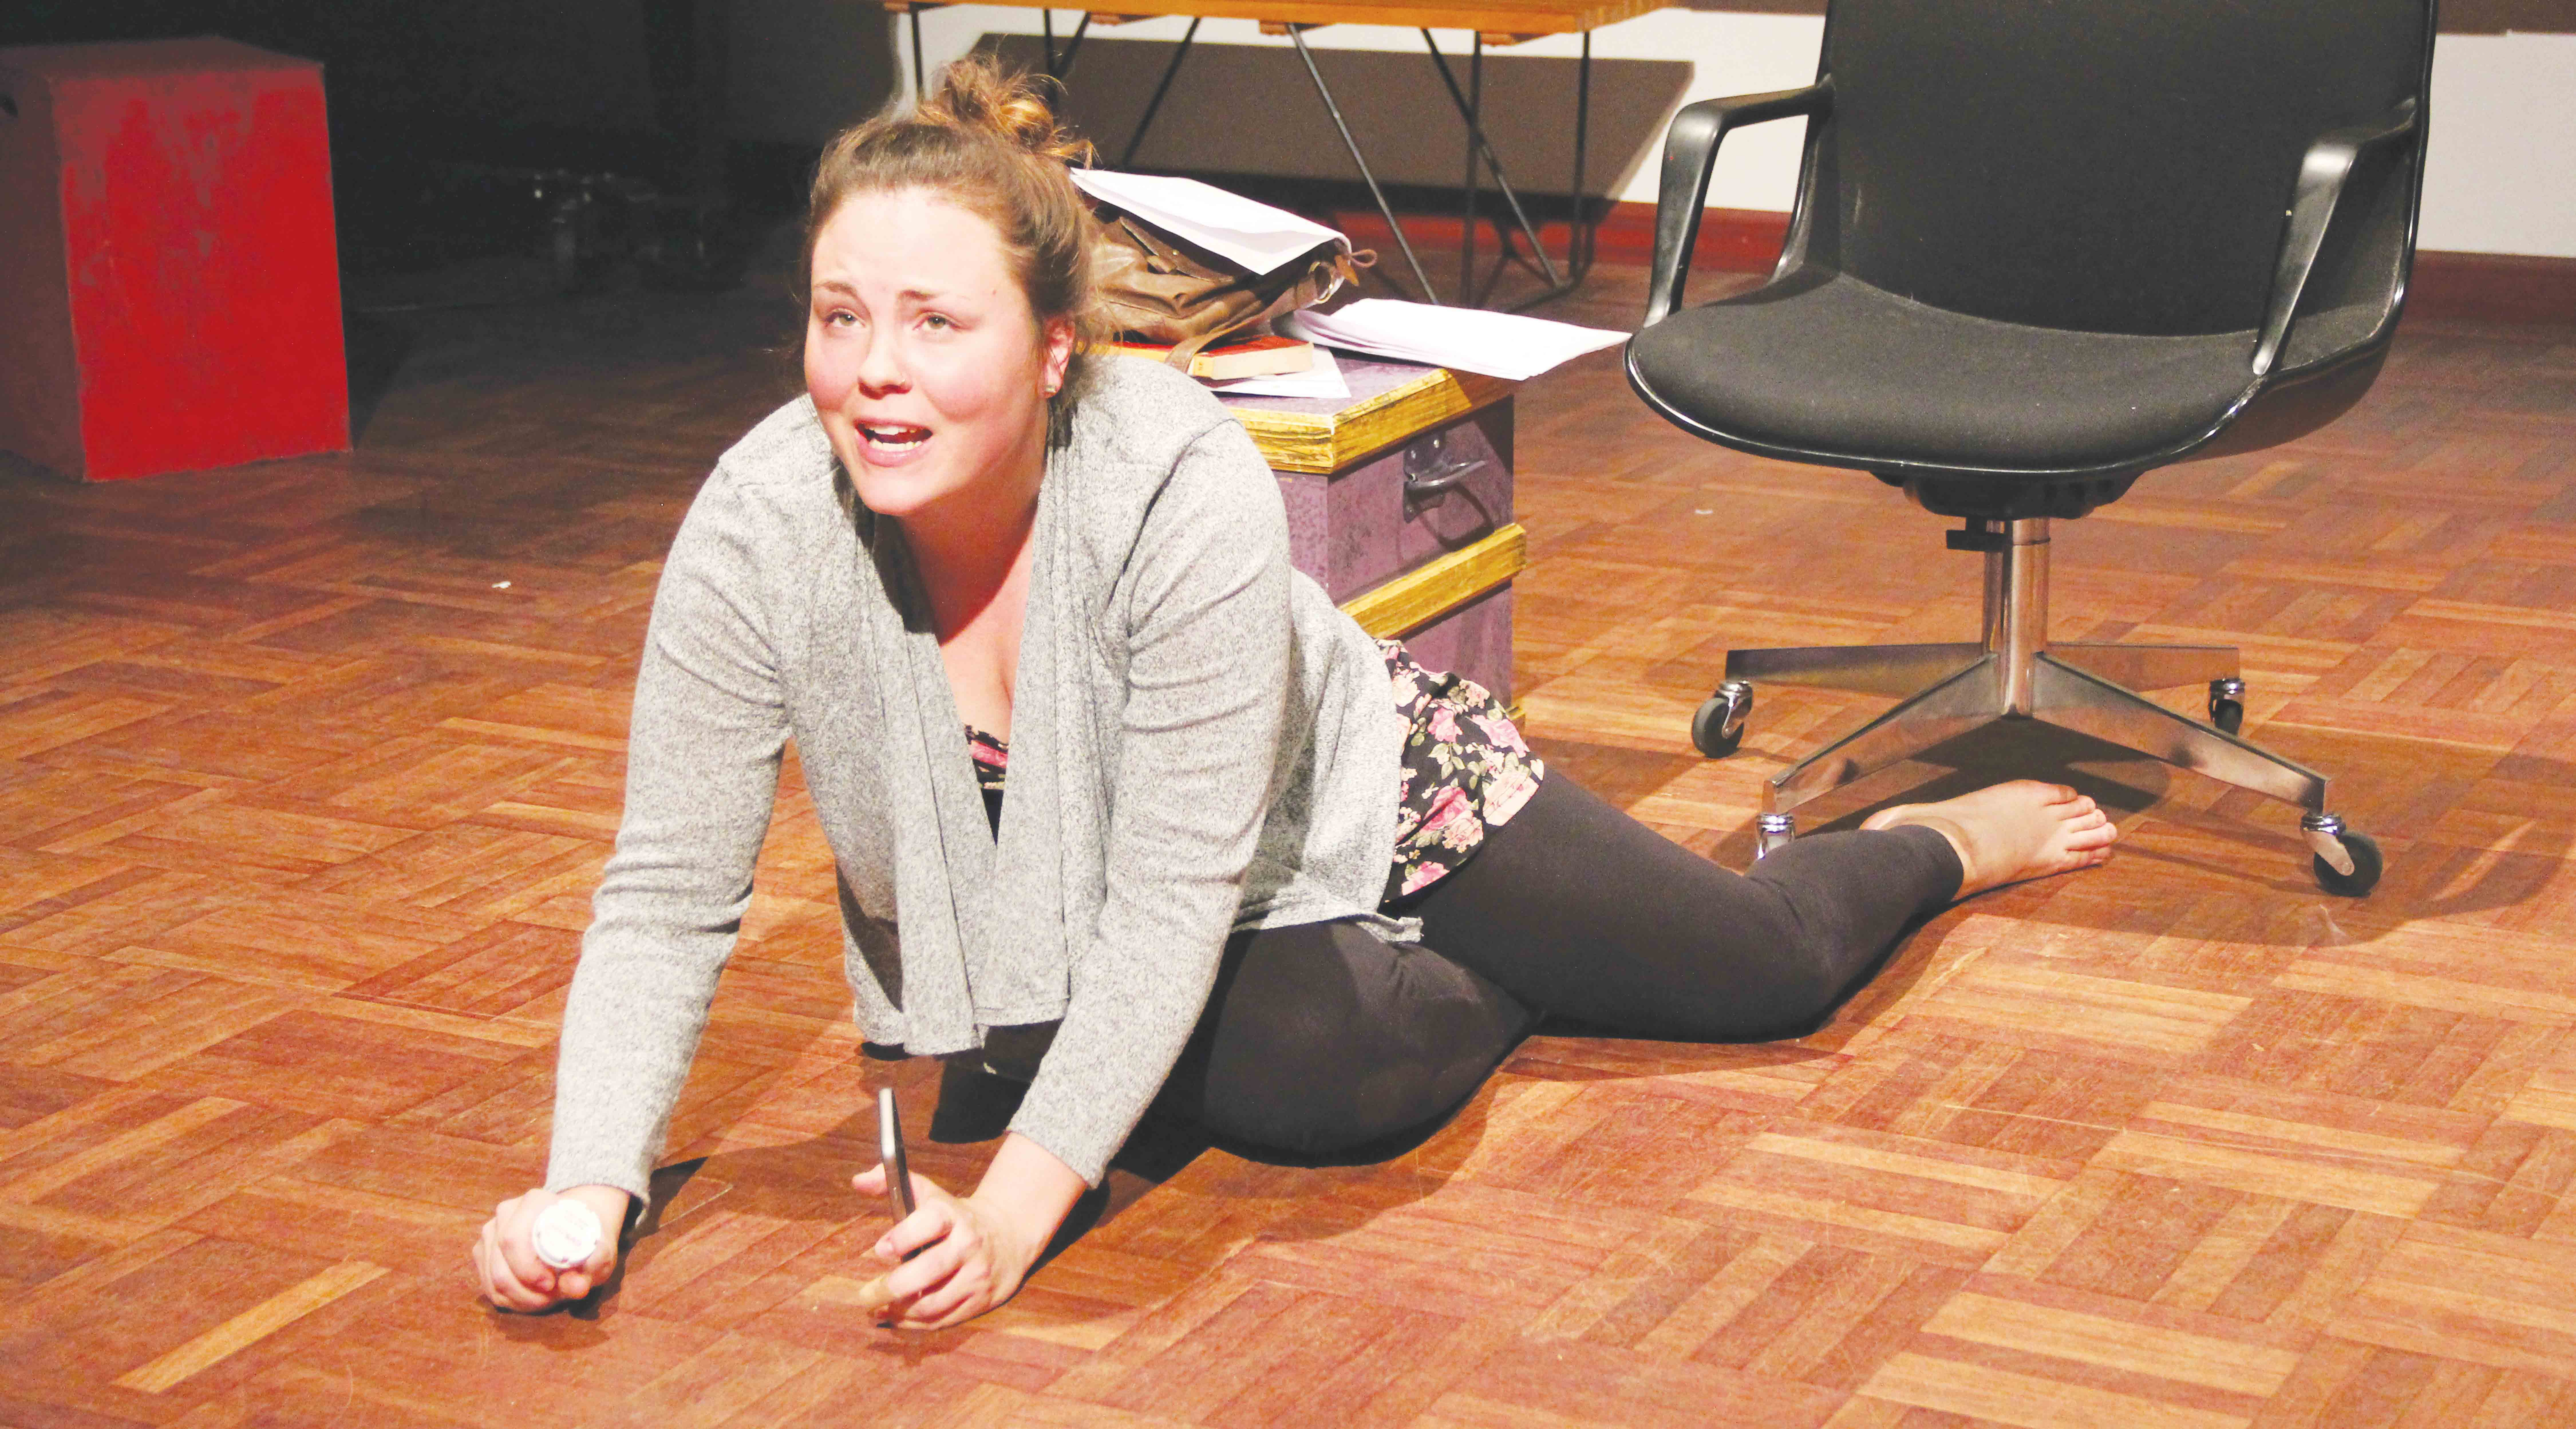 """Brooke Mogy, a recent FMU graduate, performs in """"Carousel"""" as Arabella during a 10-minute play."""